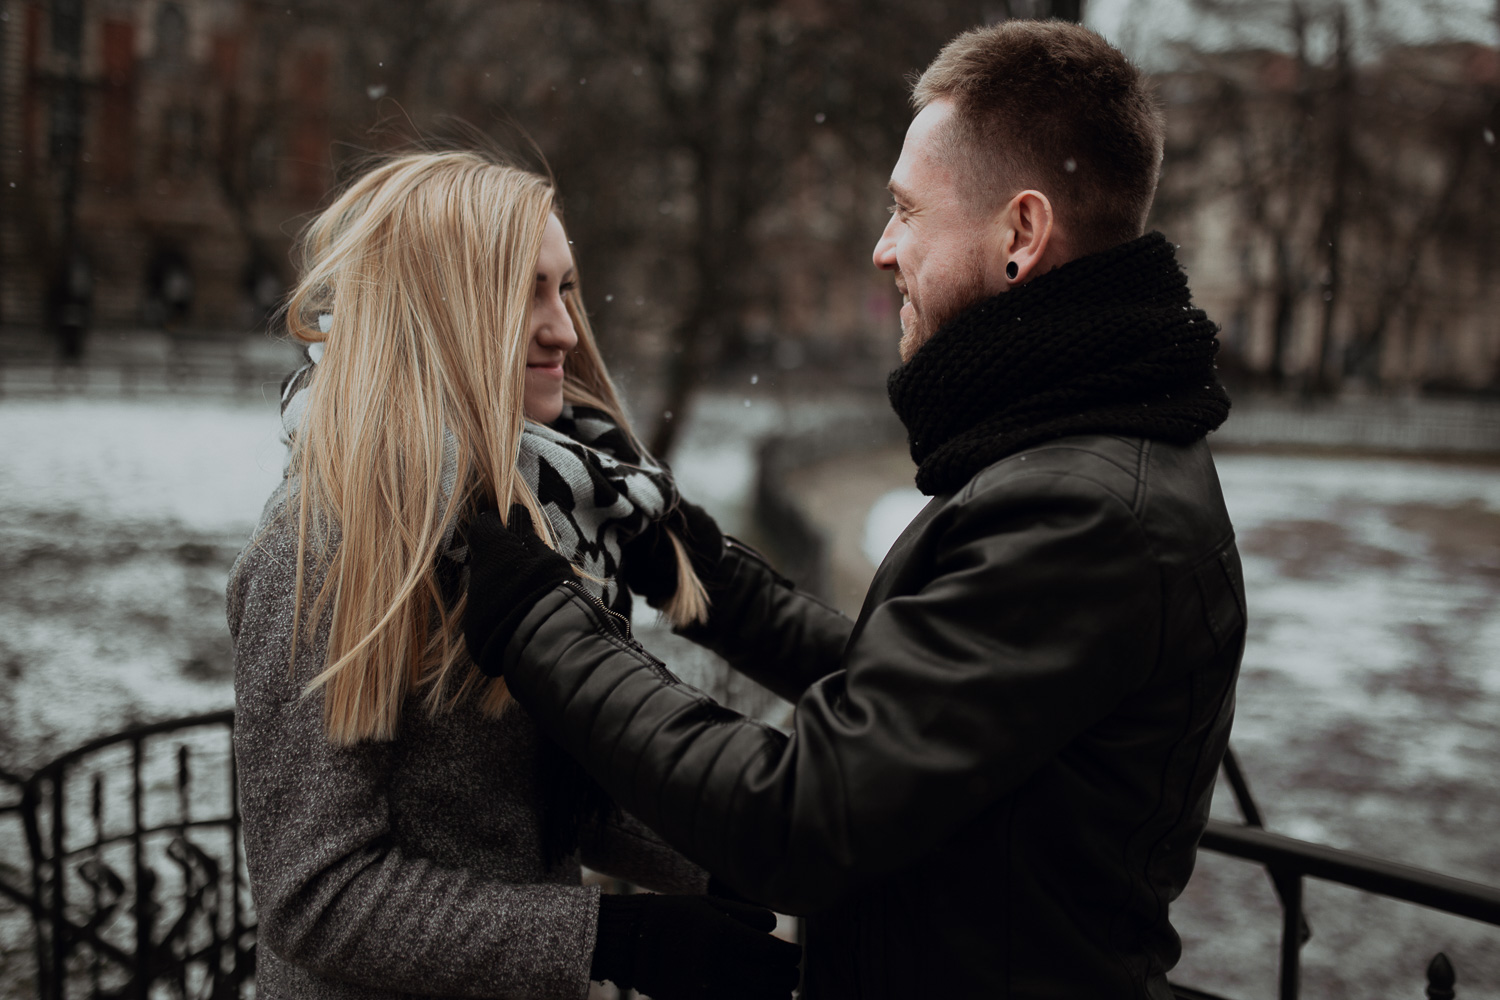 Engagement-photoshoot-in-winter-krakow-wawel-3.jpg